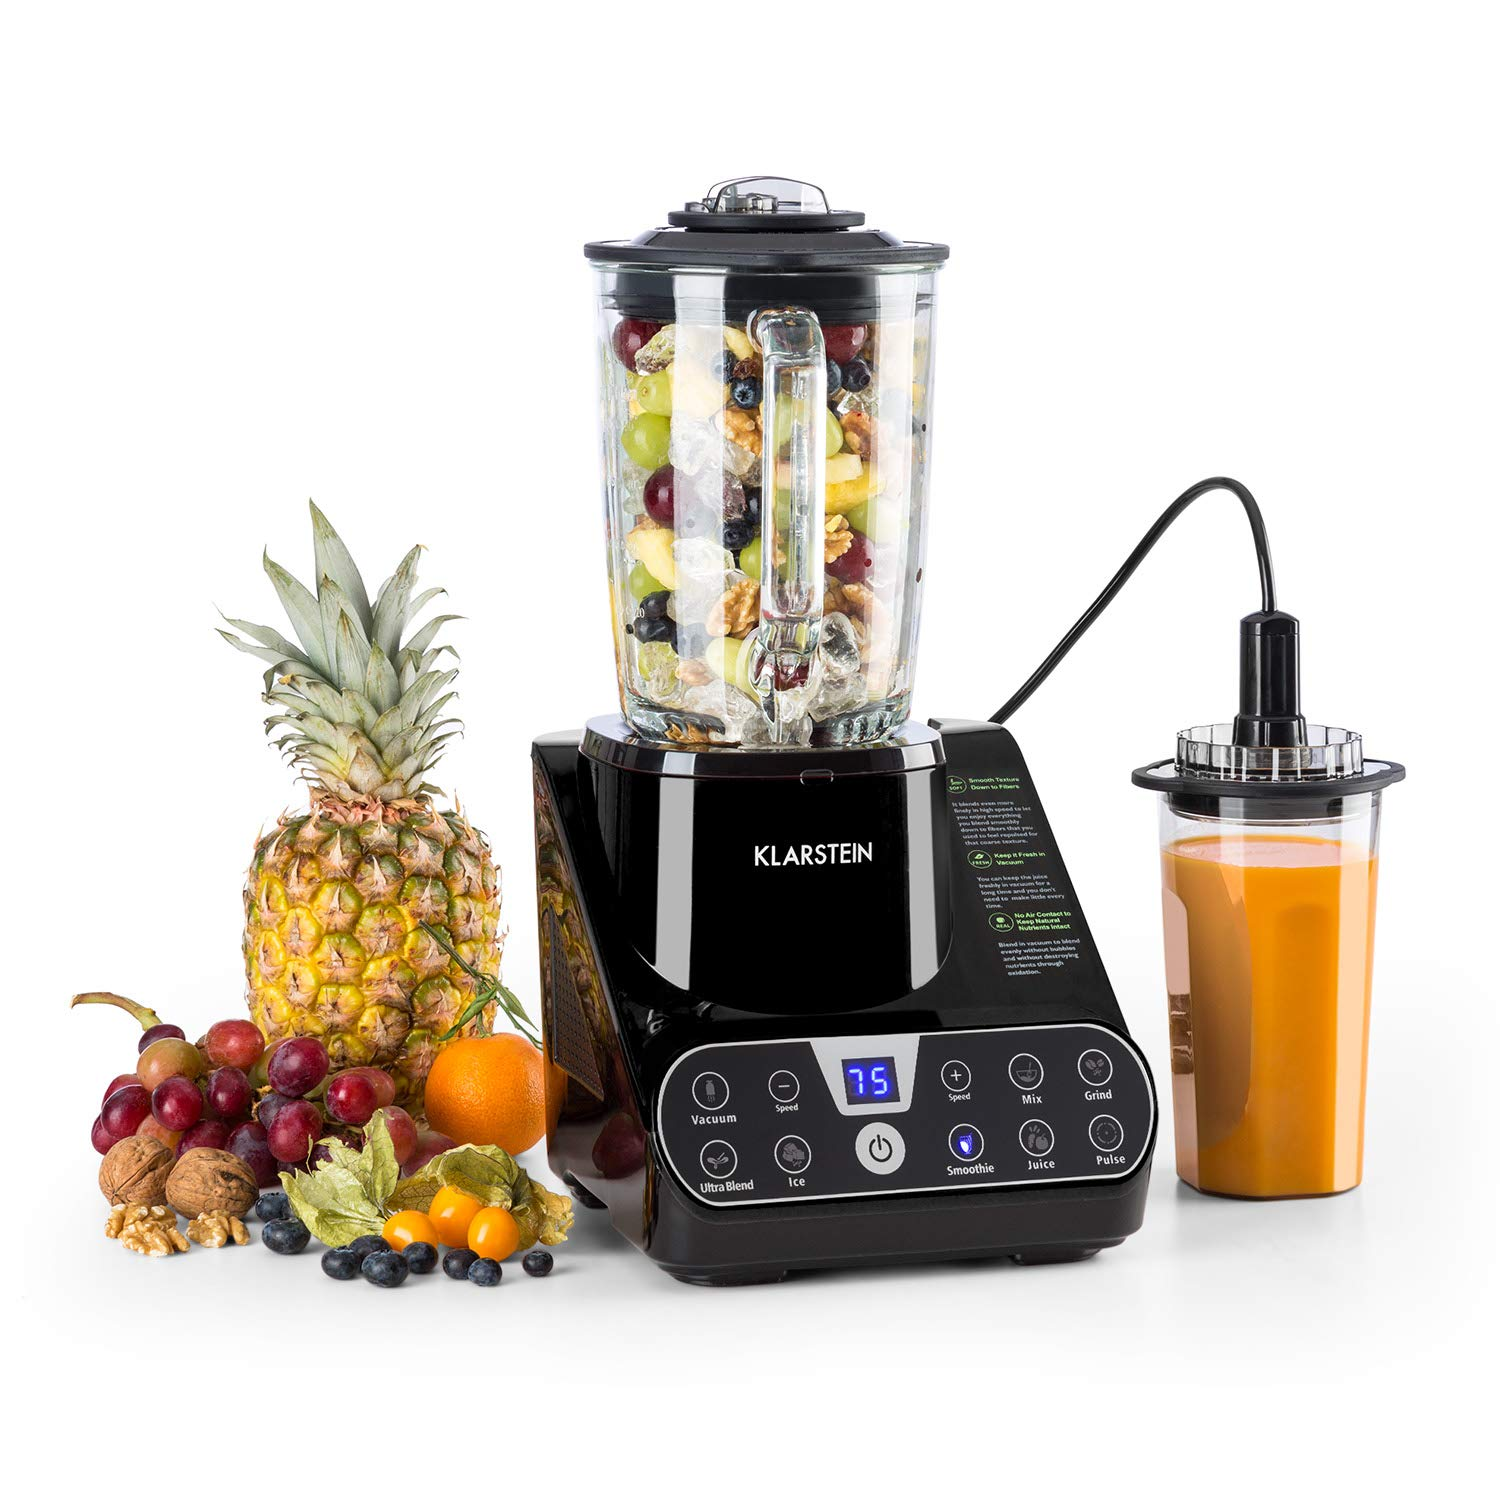 Klarstein Airakles Vacuum Blender • Blender • 1300W • 26000 RPM • 1.5 Liter Glass Jug• Vacuum Function • 7 Programs • 6 Power Levels • Pulse • Stainless Steel Mechanism • 6 Blades • Black